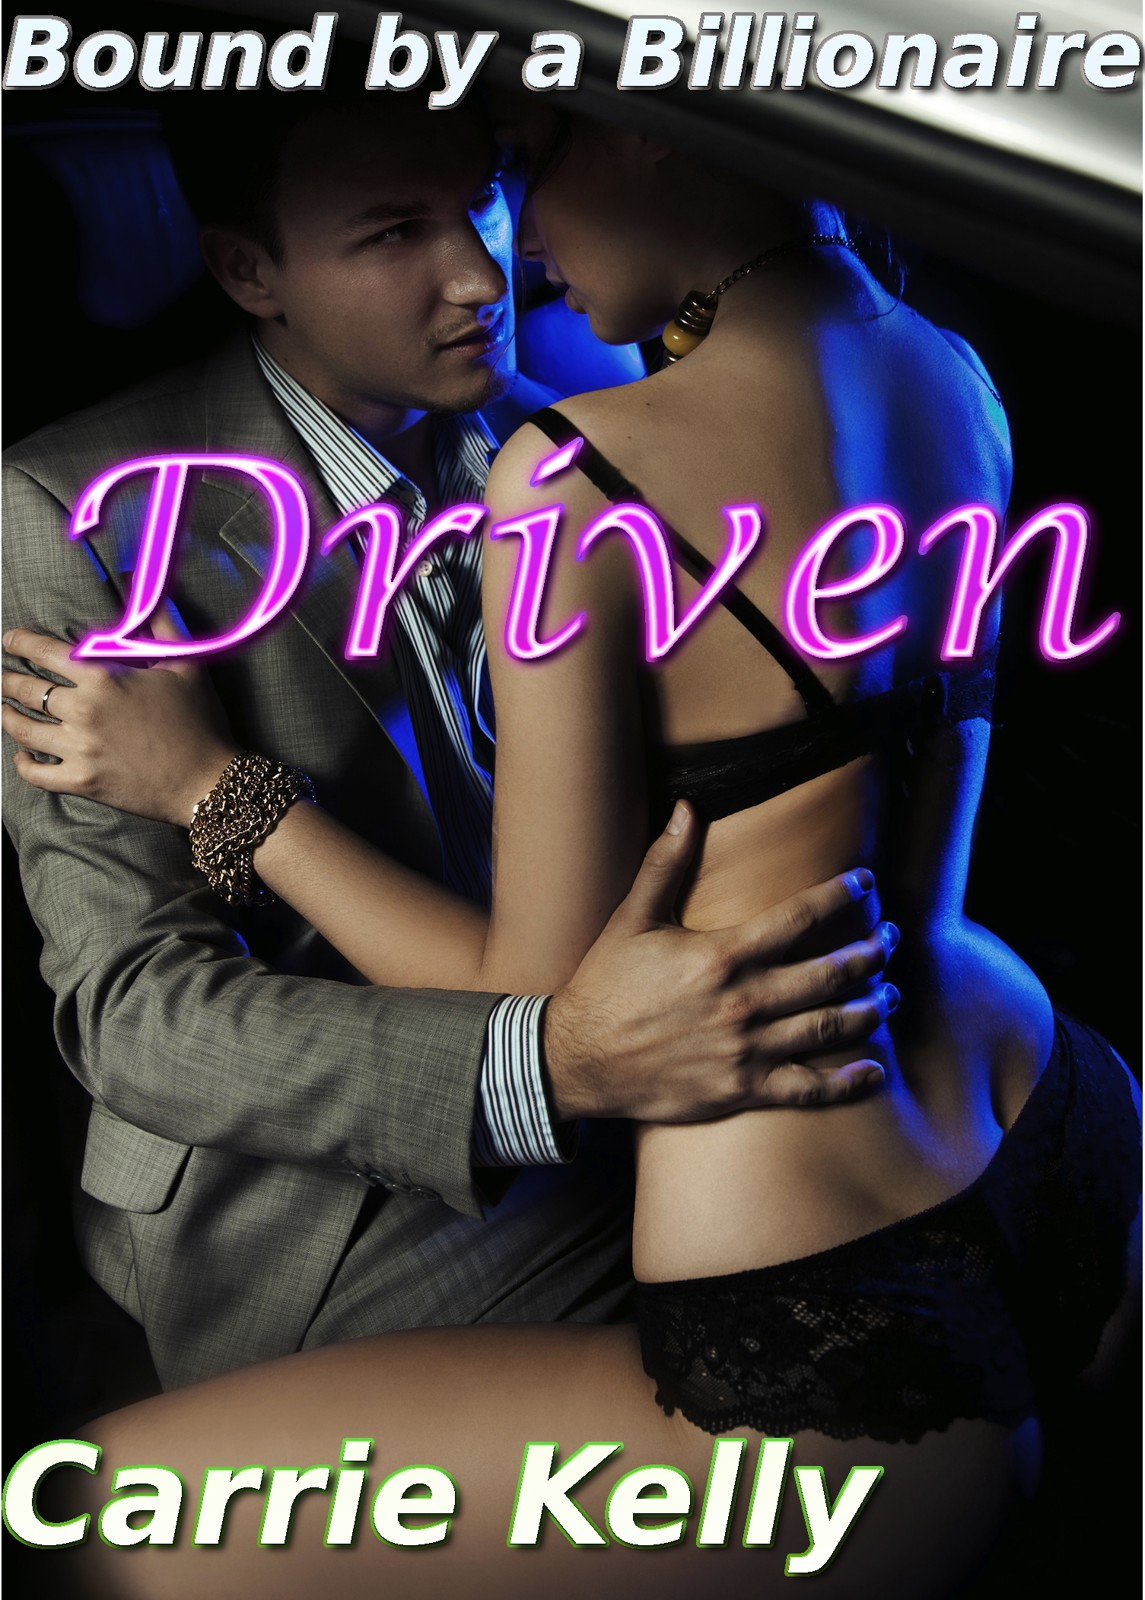 Driven: Bound by the Billionaire Part 3 (A BDSM Billionaire Erotic Romance)